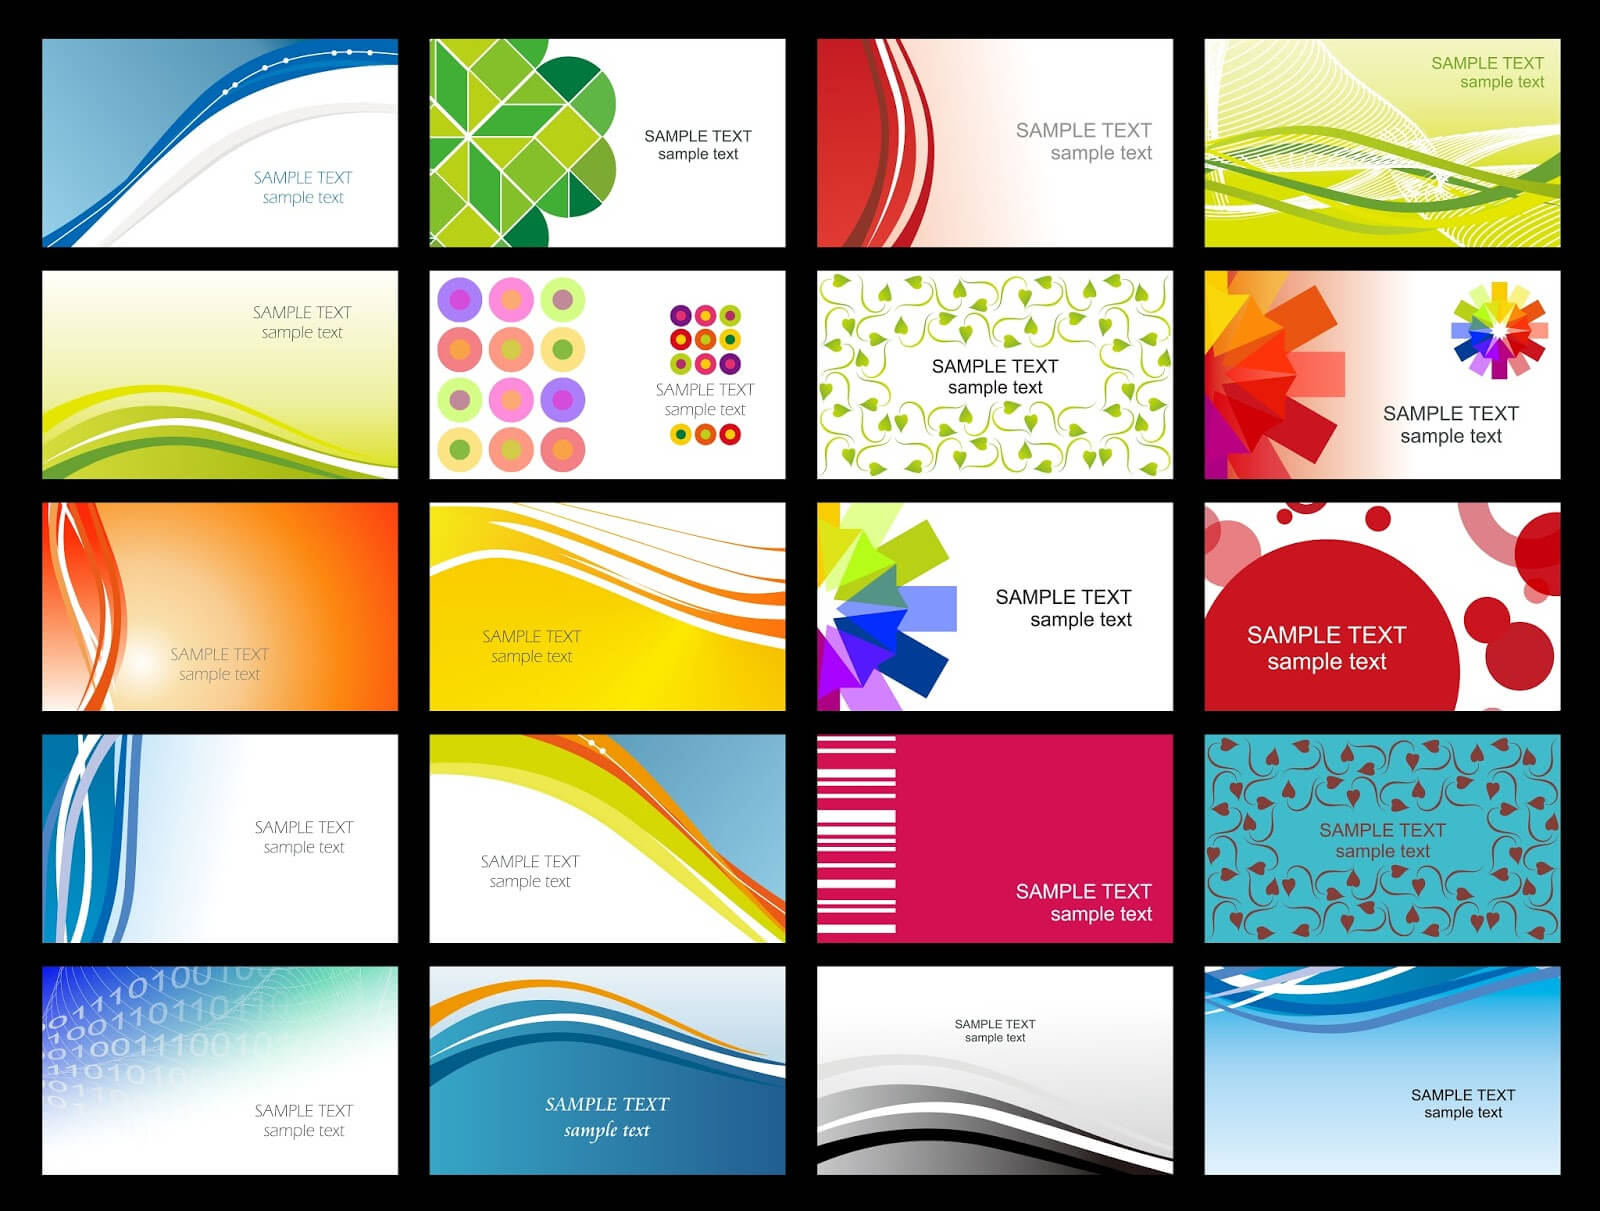 Printable Business Card Template – Business Card Tips With Regard To Blank Business Card Template Download